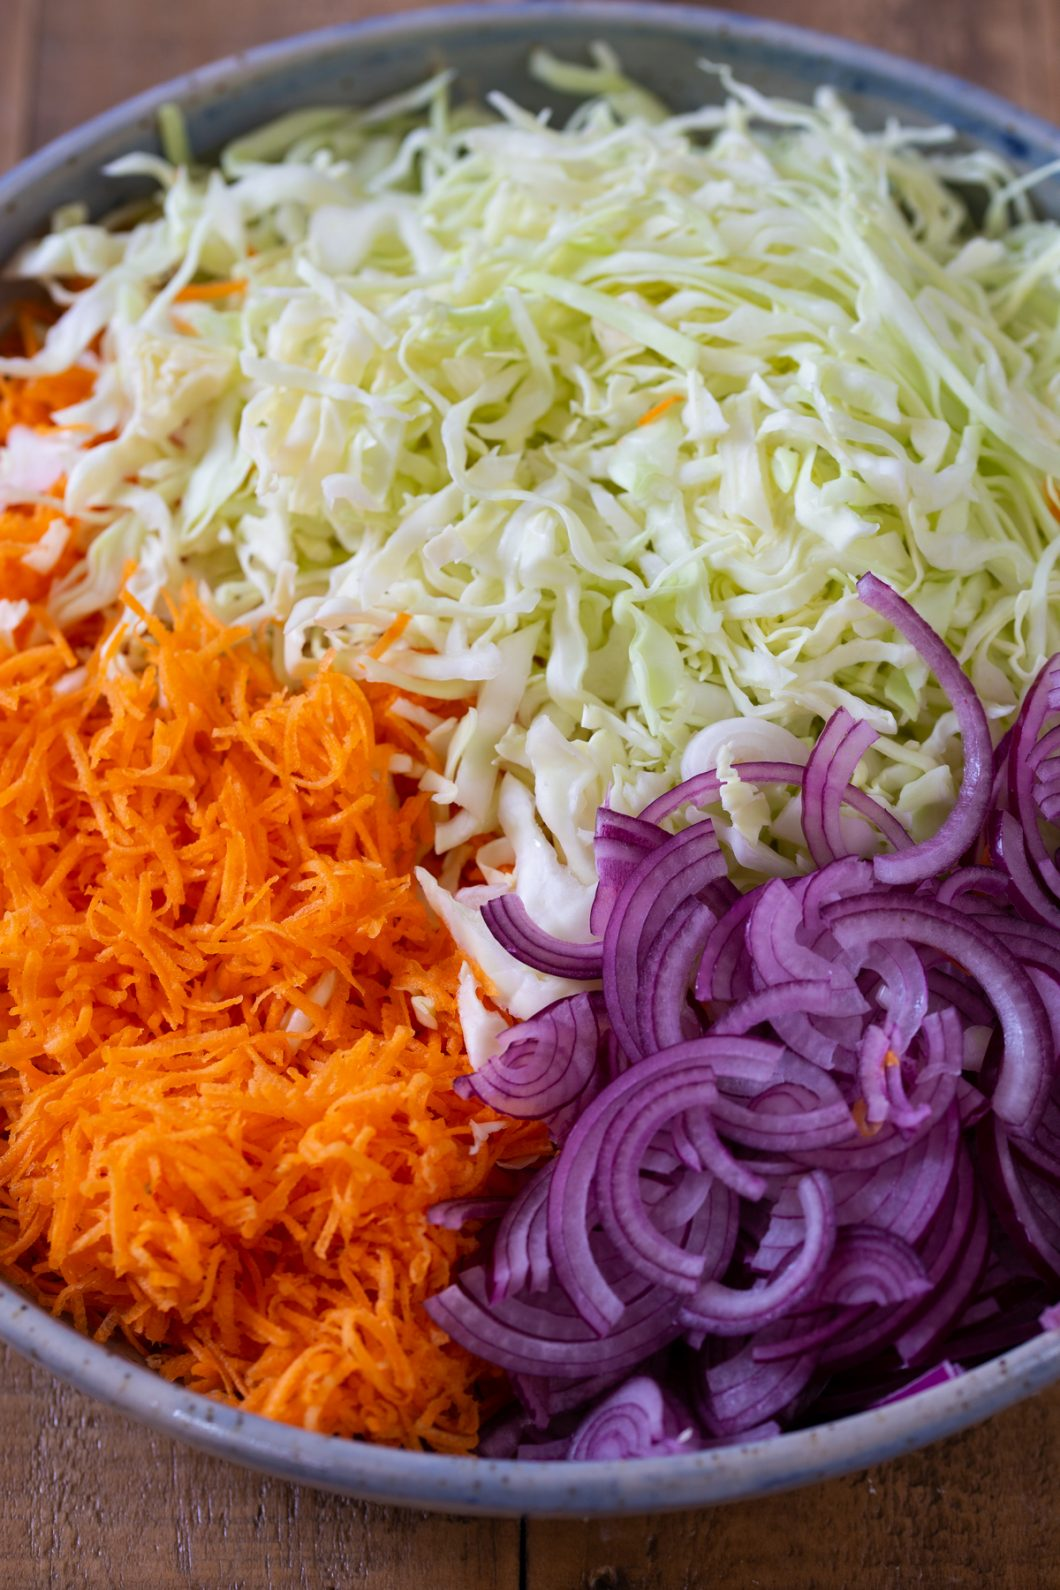 Thinly sliced carrot, white cabbage and onion together in a bowl.